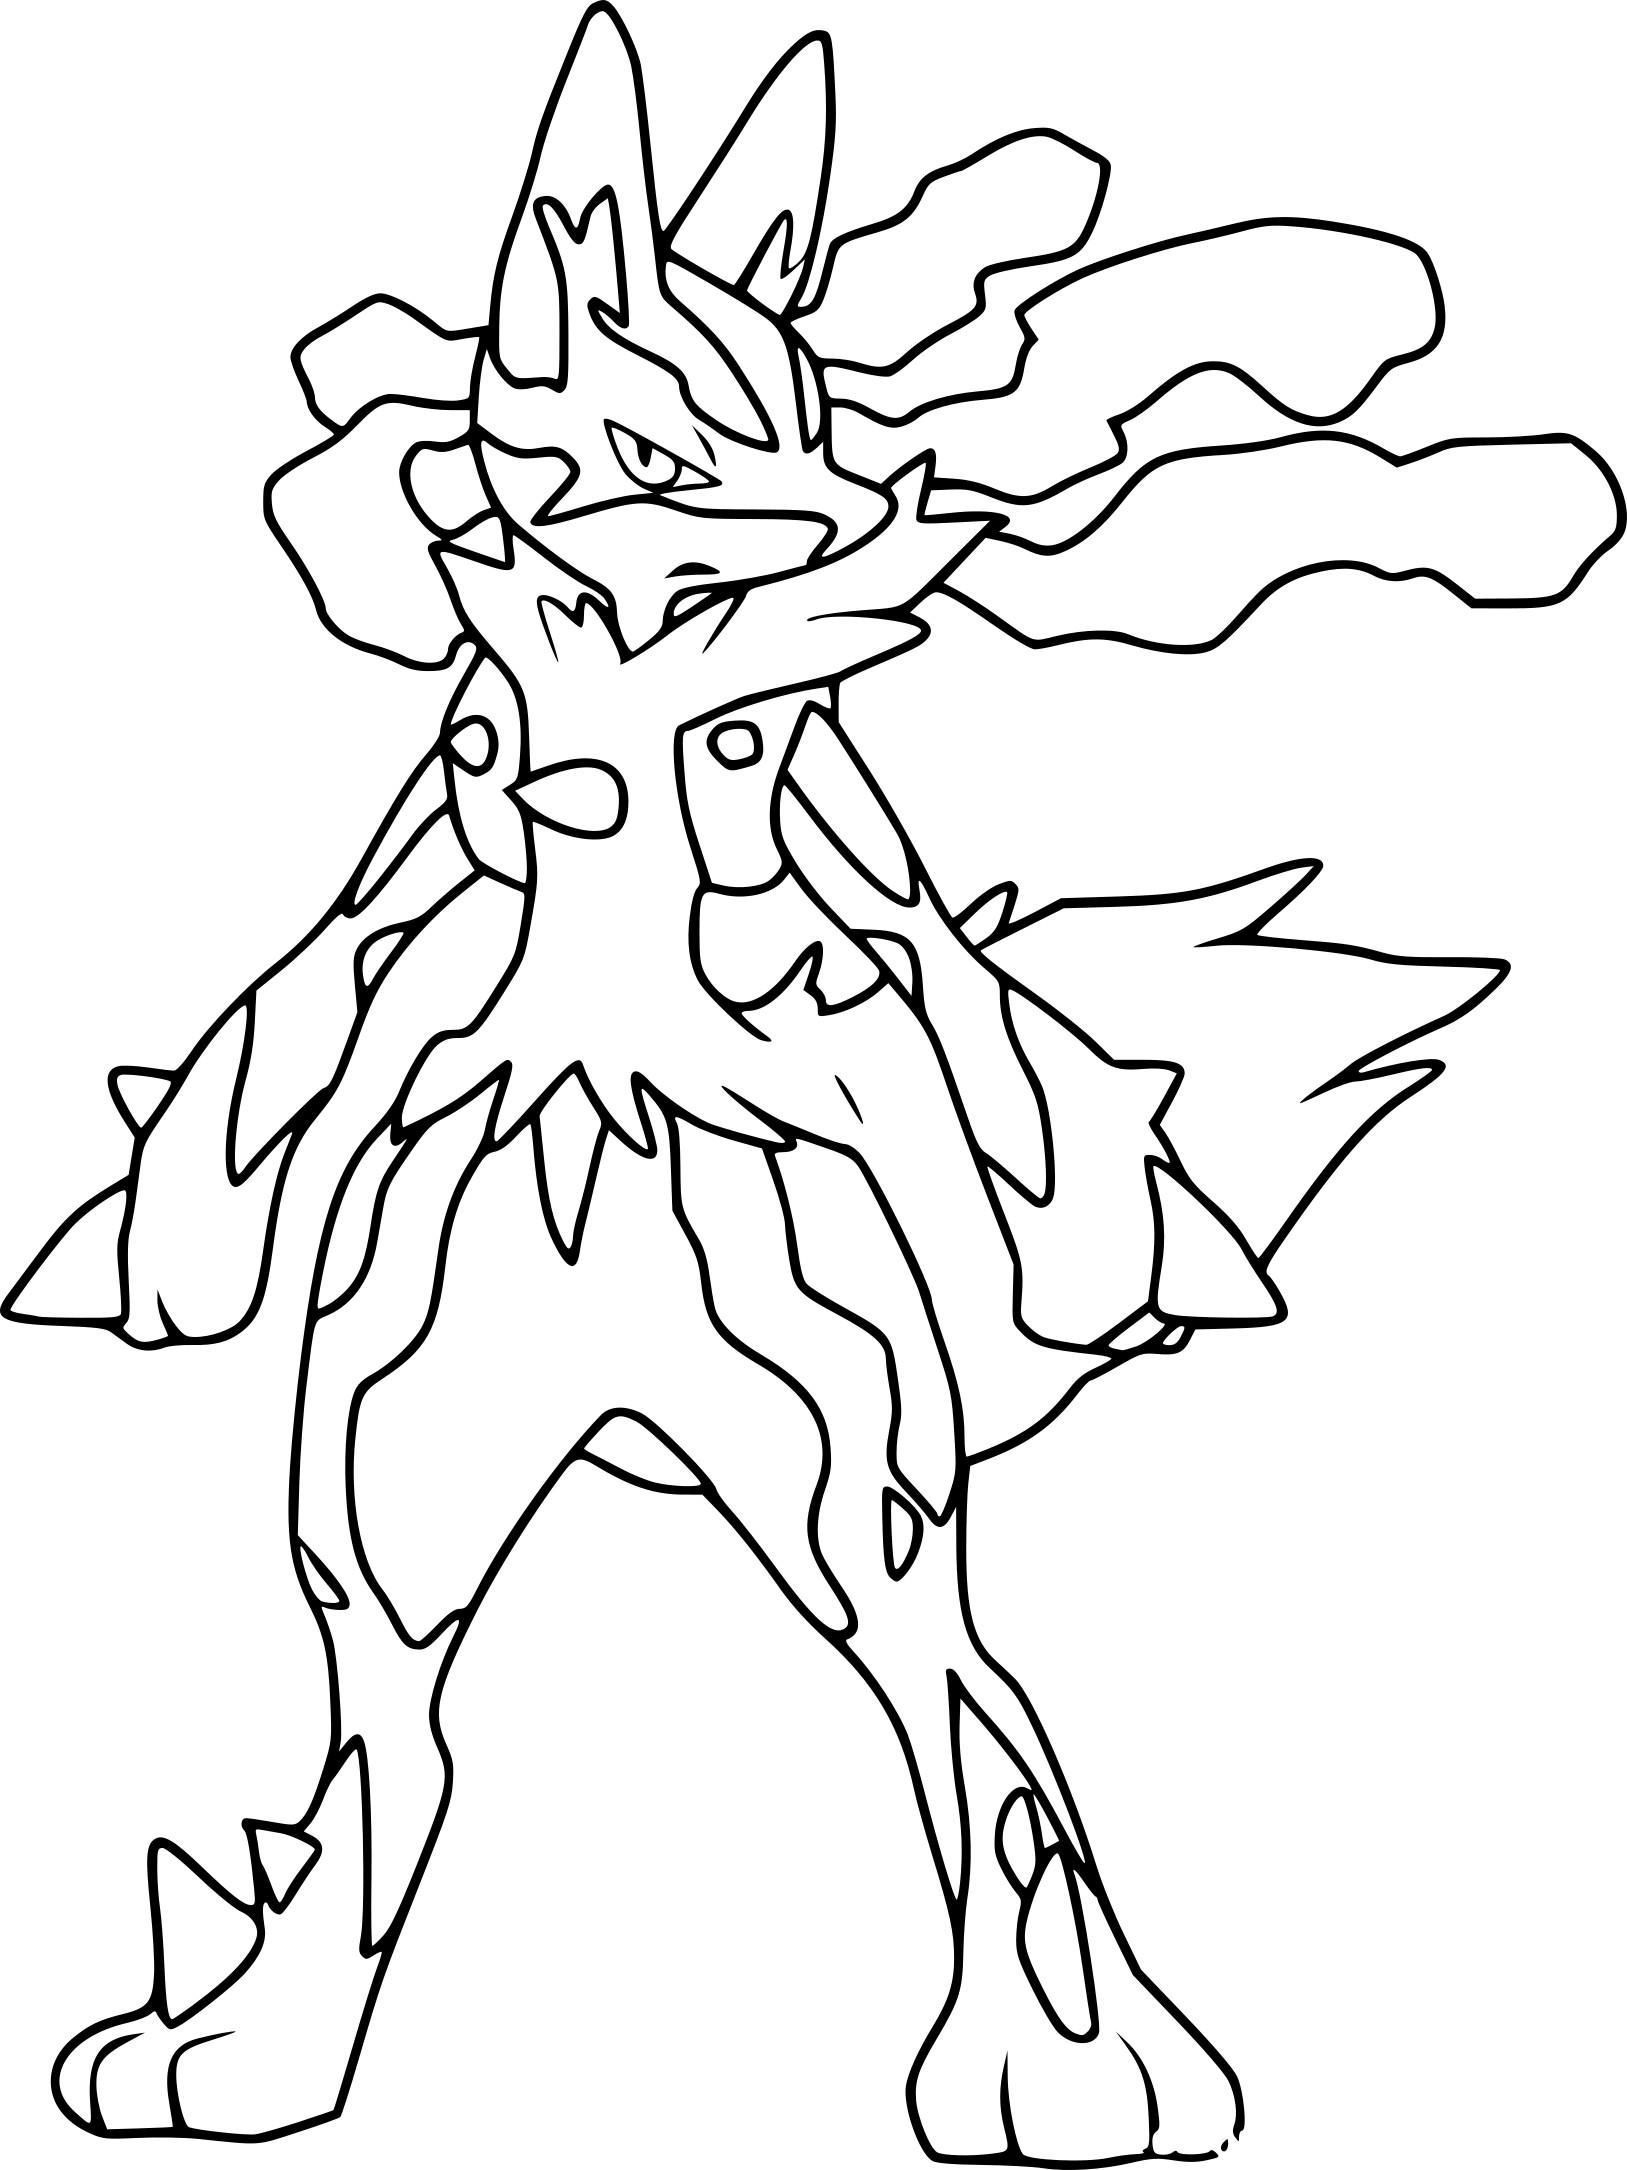 Coloriages A Imprimer Pokemon Numero 308717fa